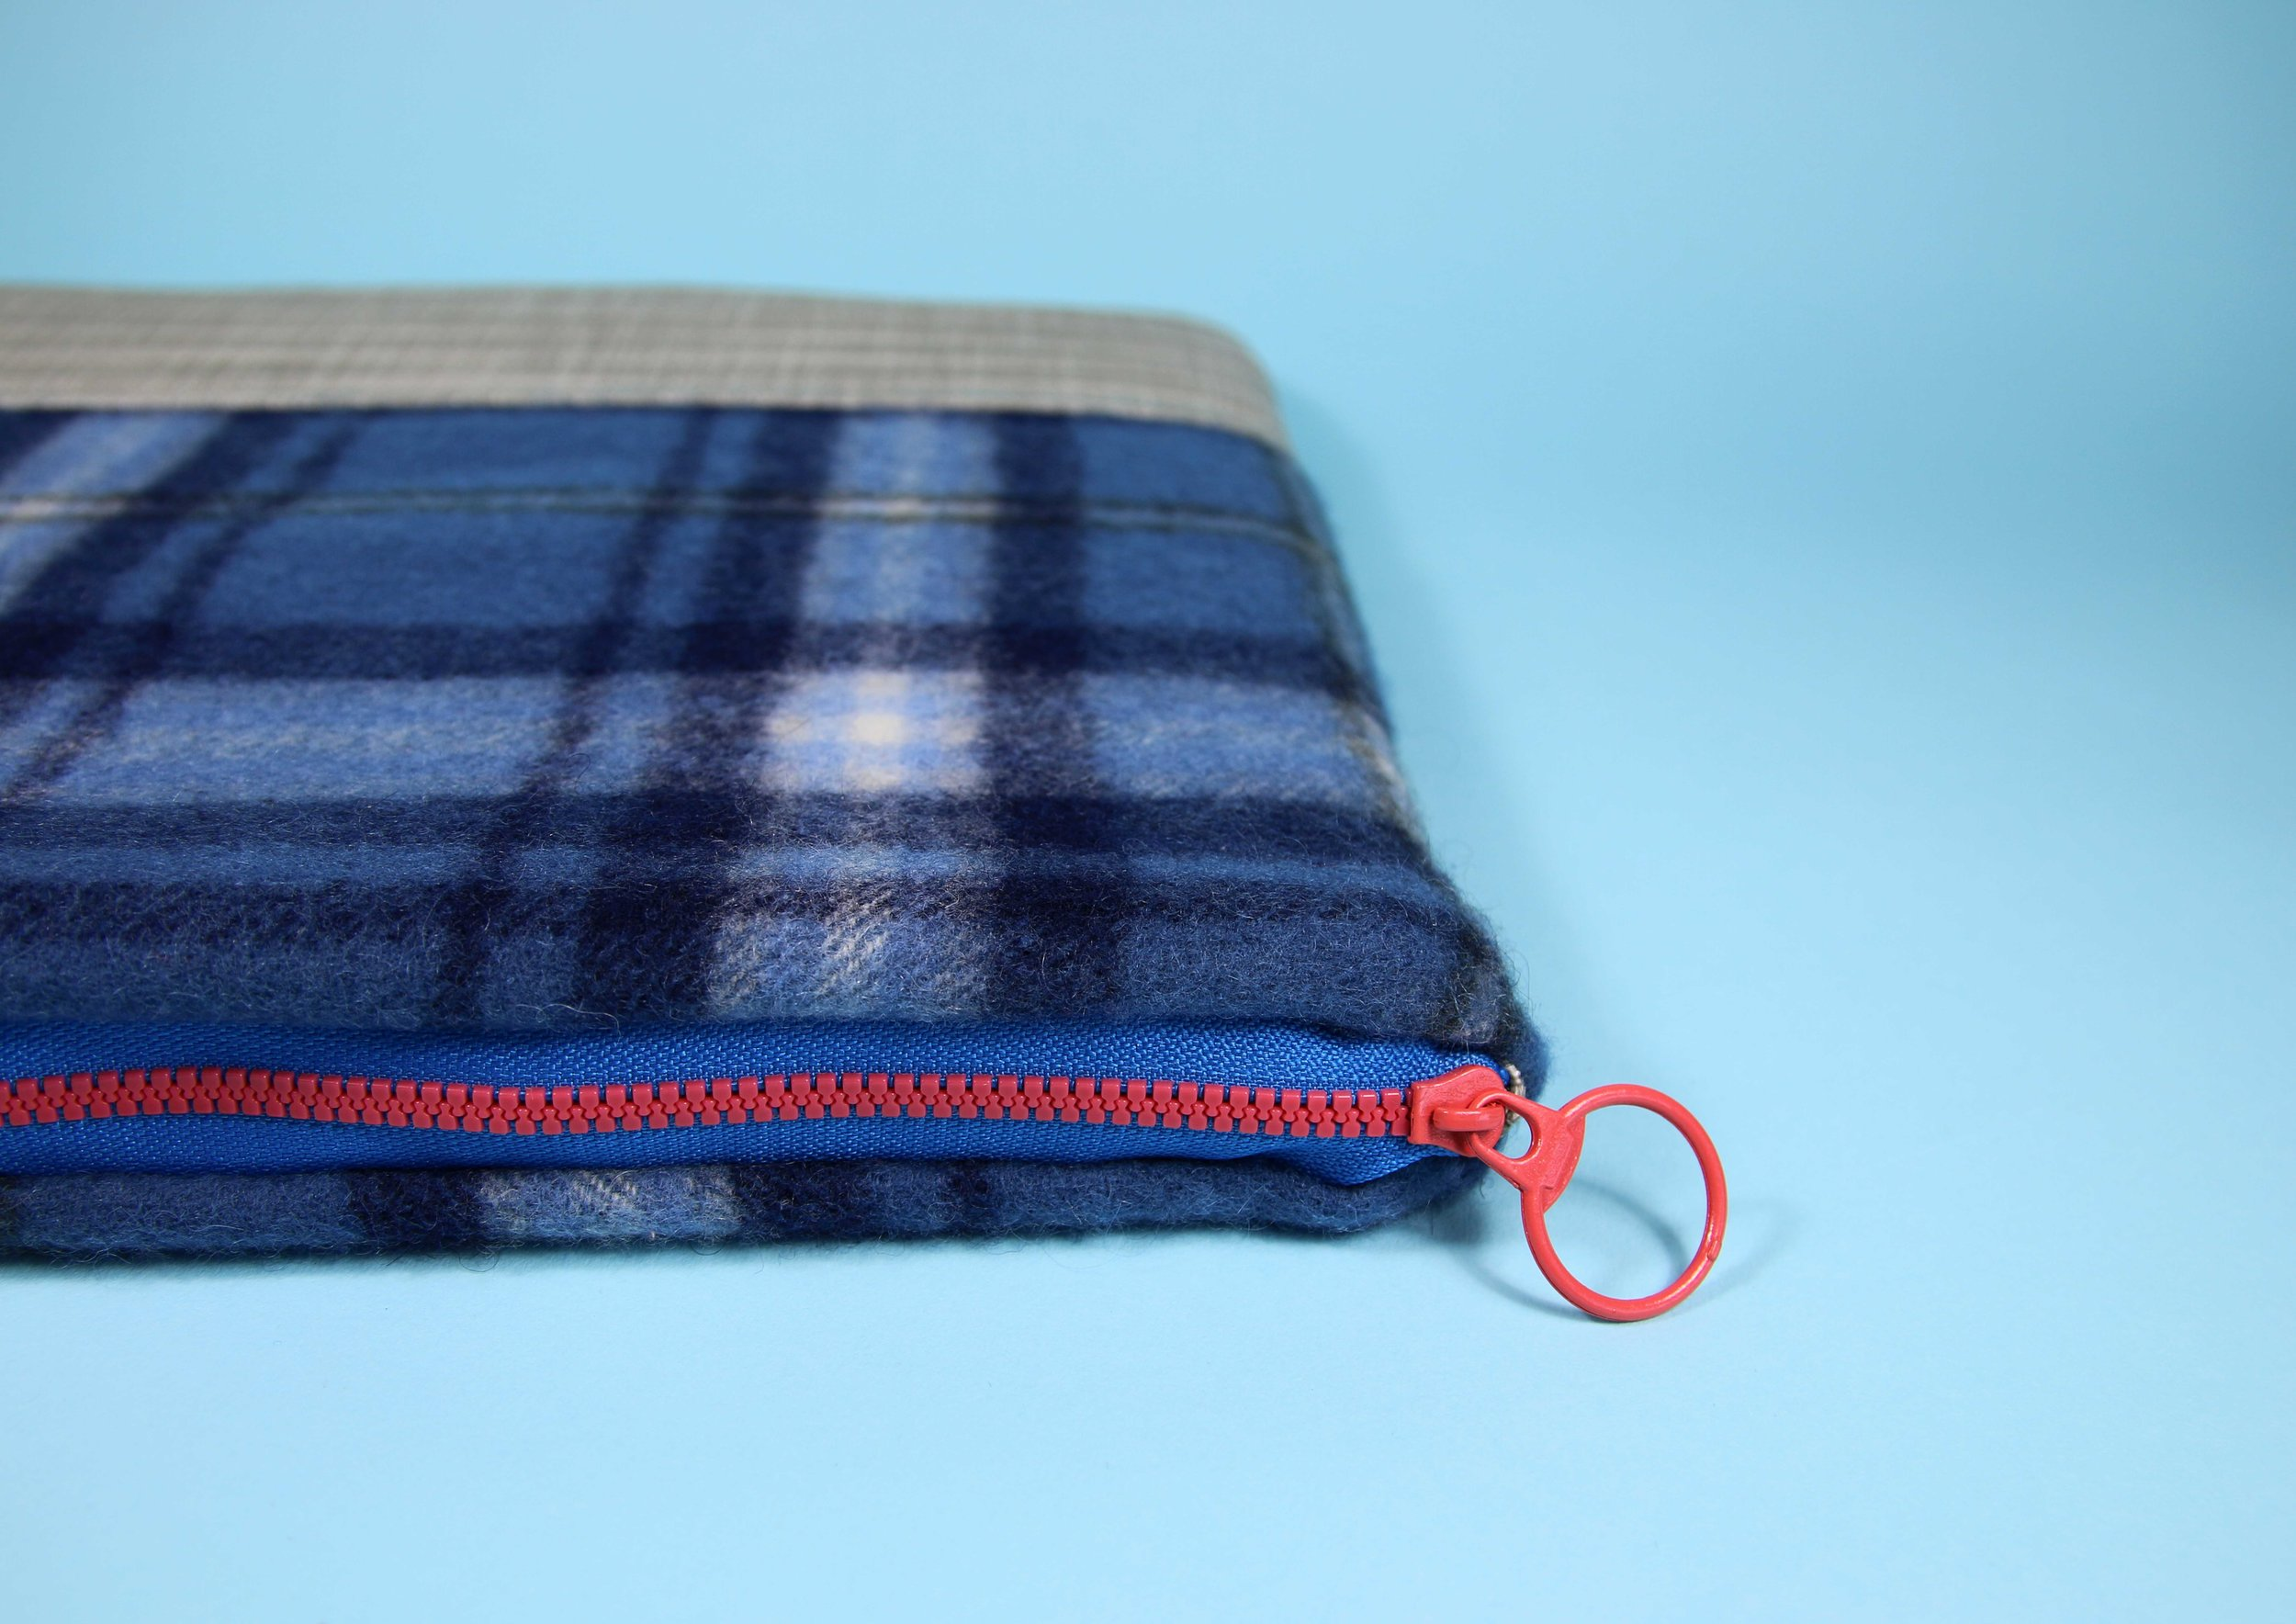 laptop case blue scarf 3.jpg